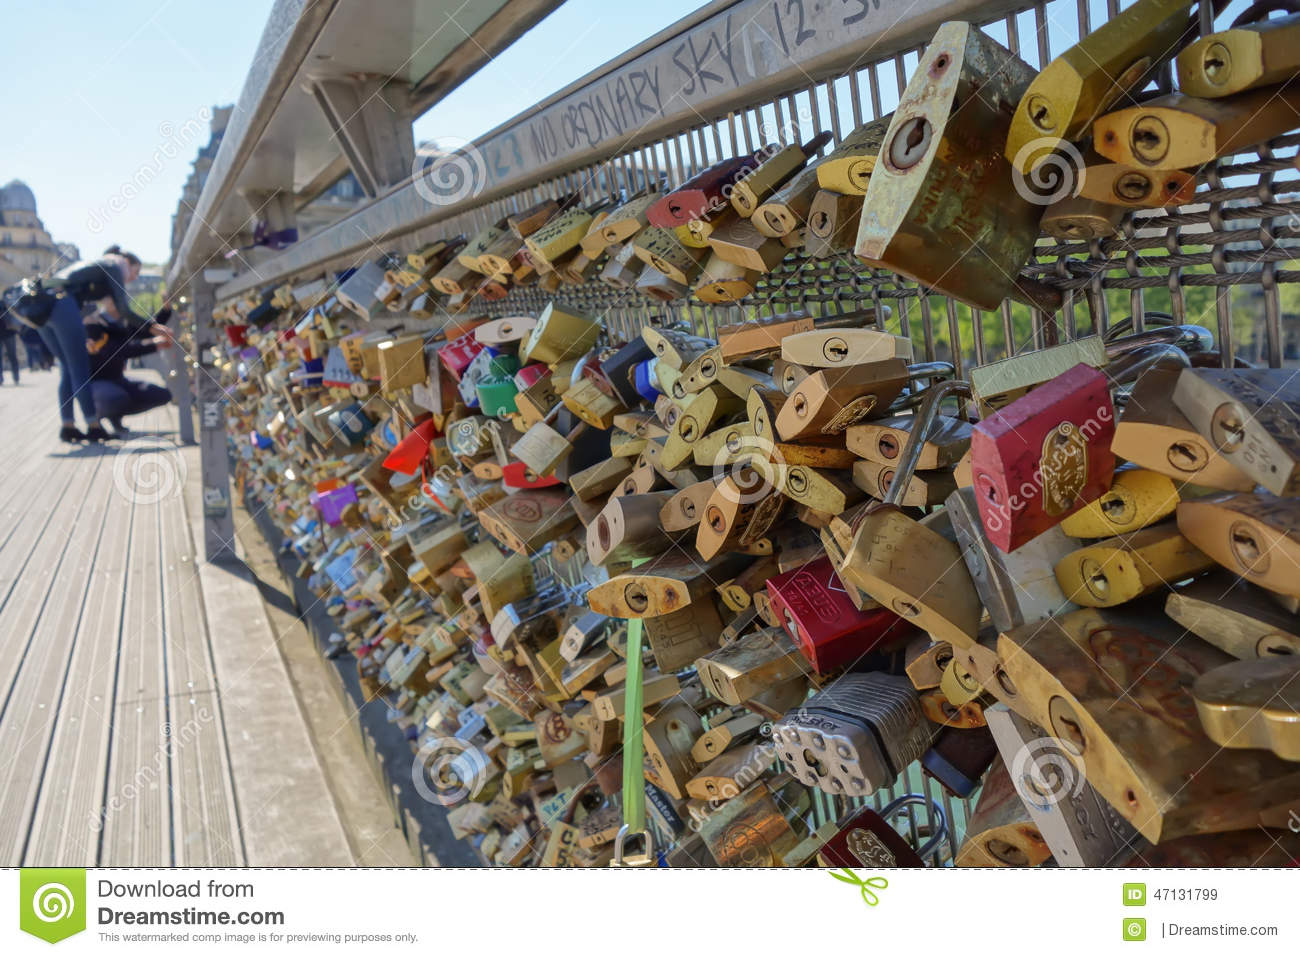 Lovelocks en el puente en París